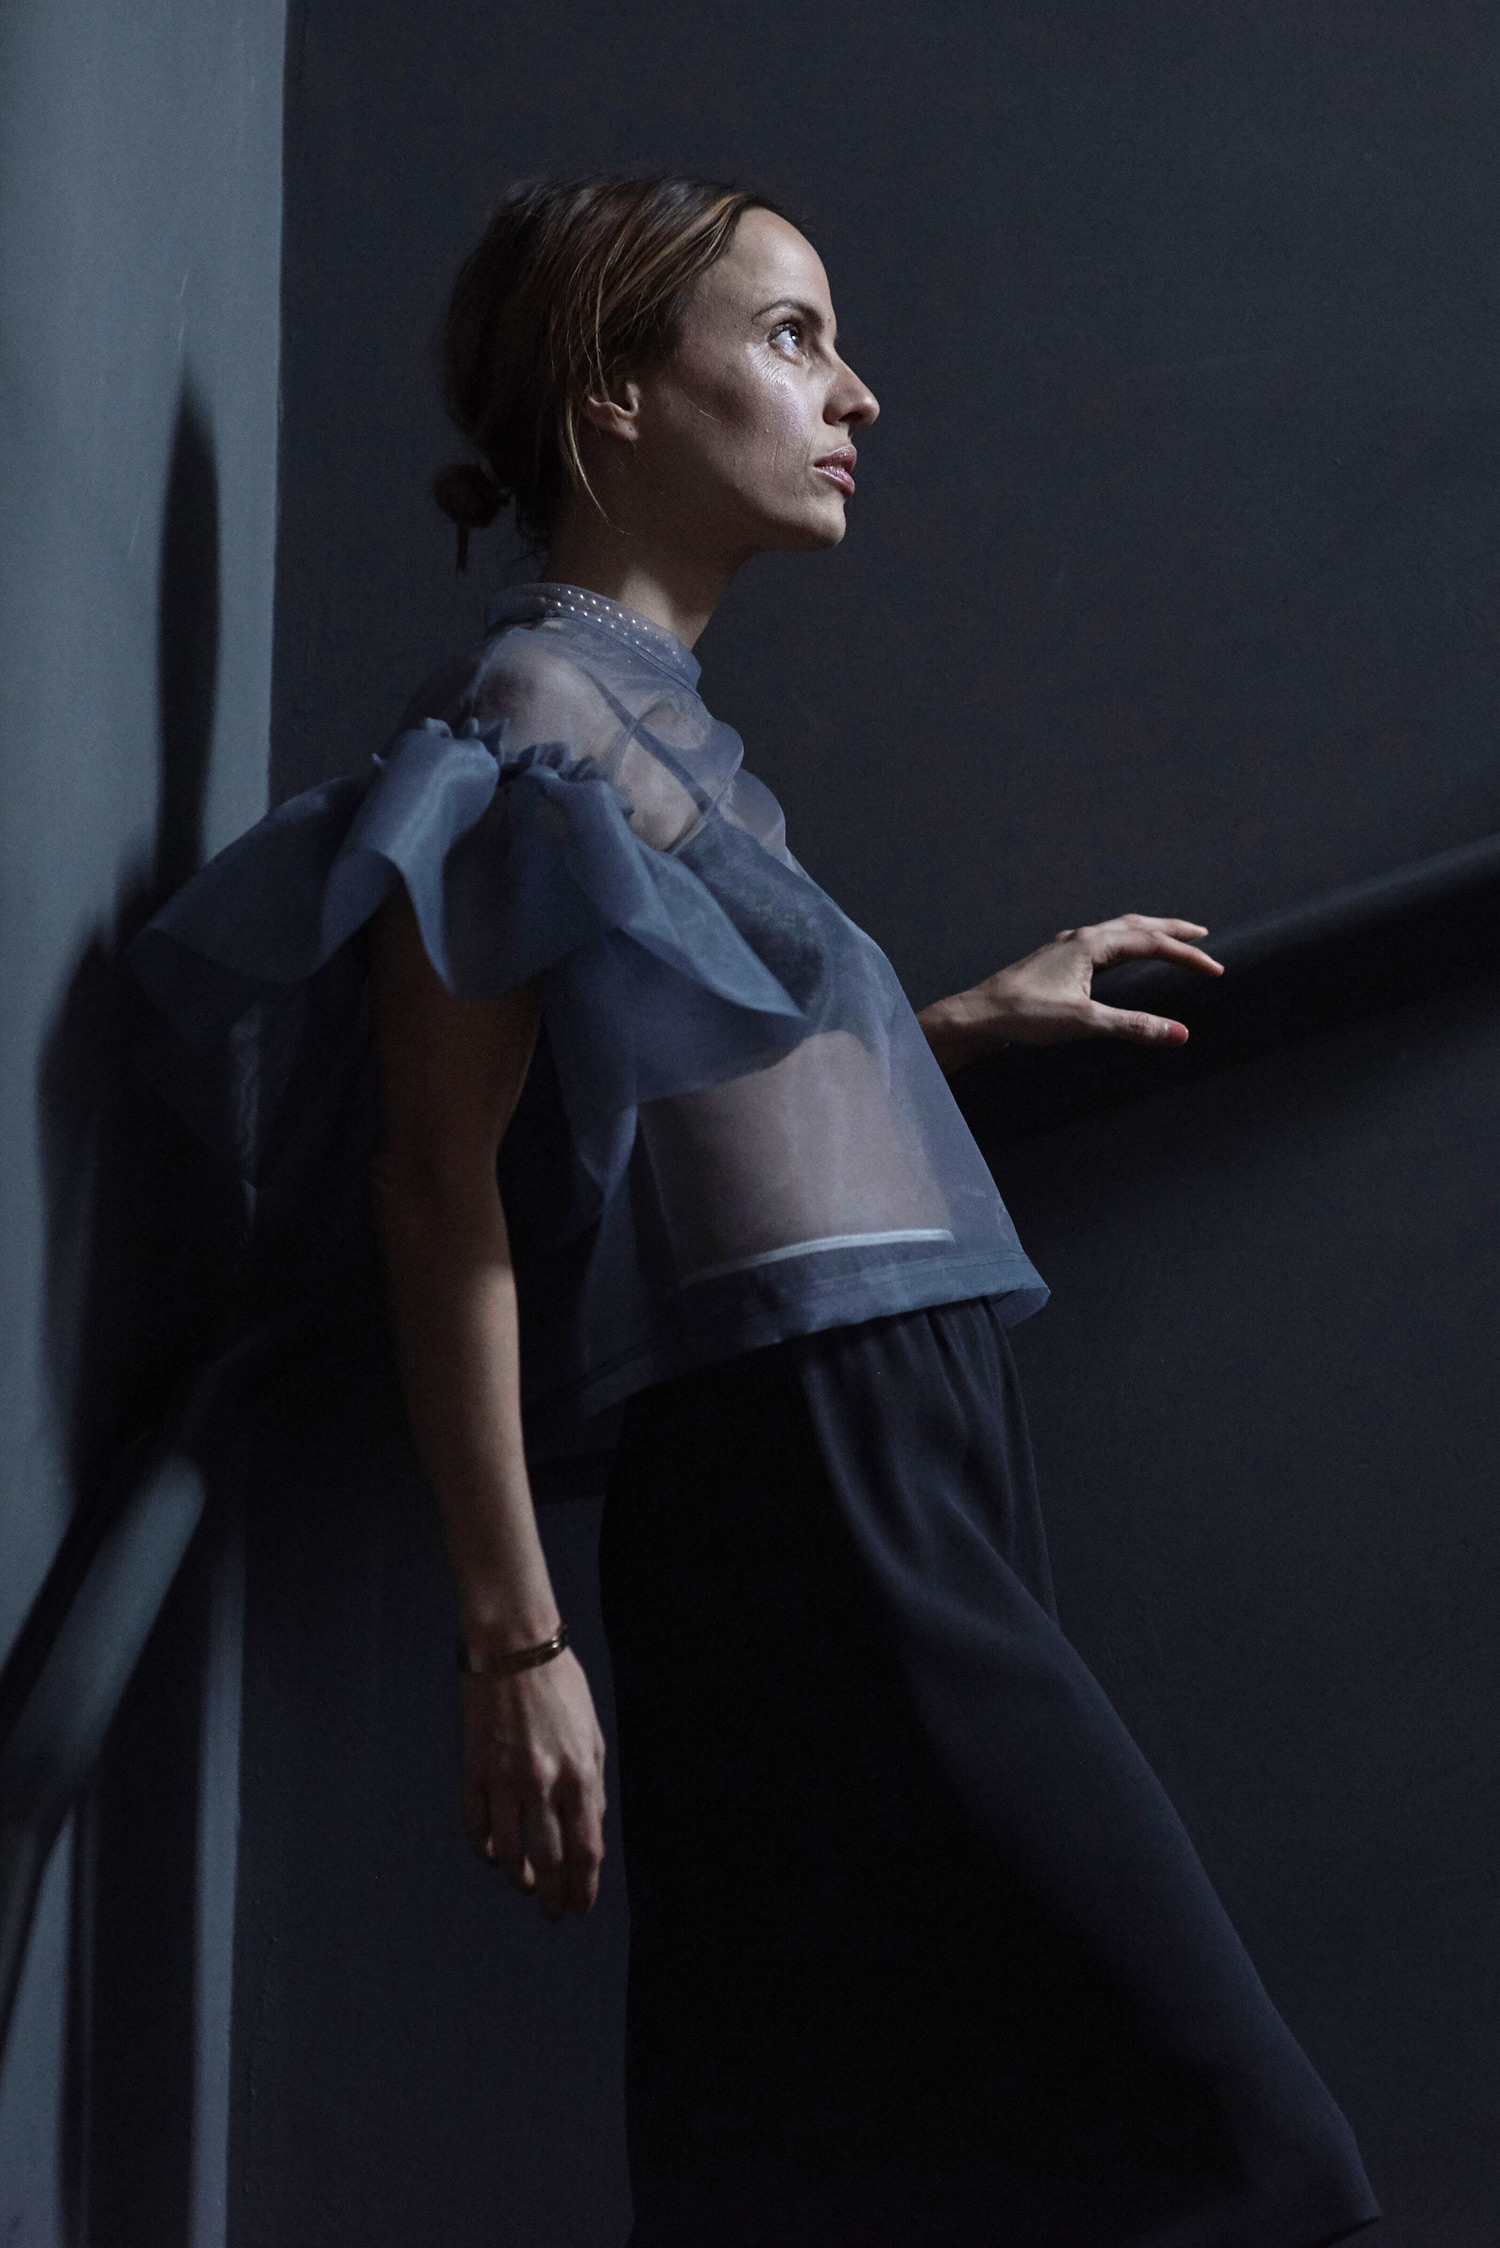 Rosa Macher Organza Top in Gris Foncé and skirt 001 in Charcoal